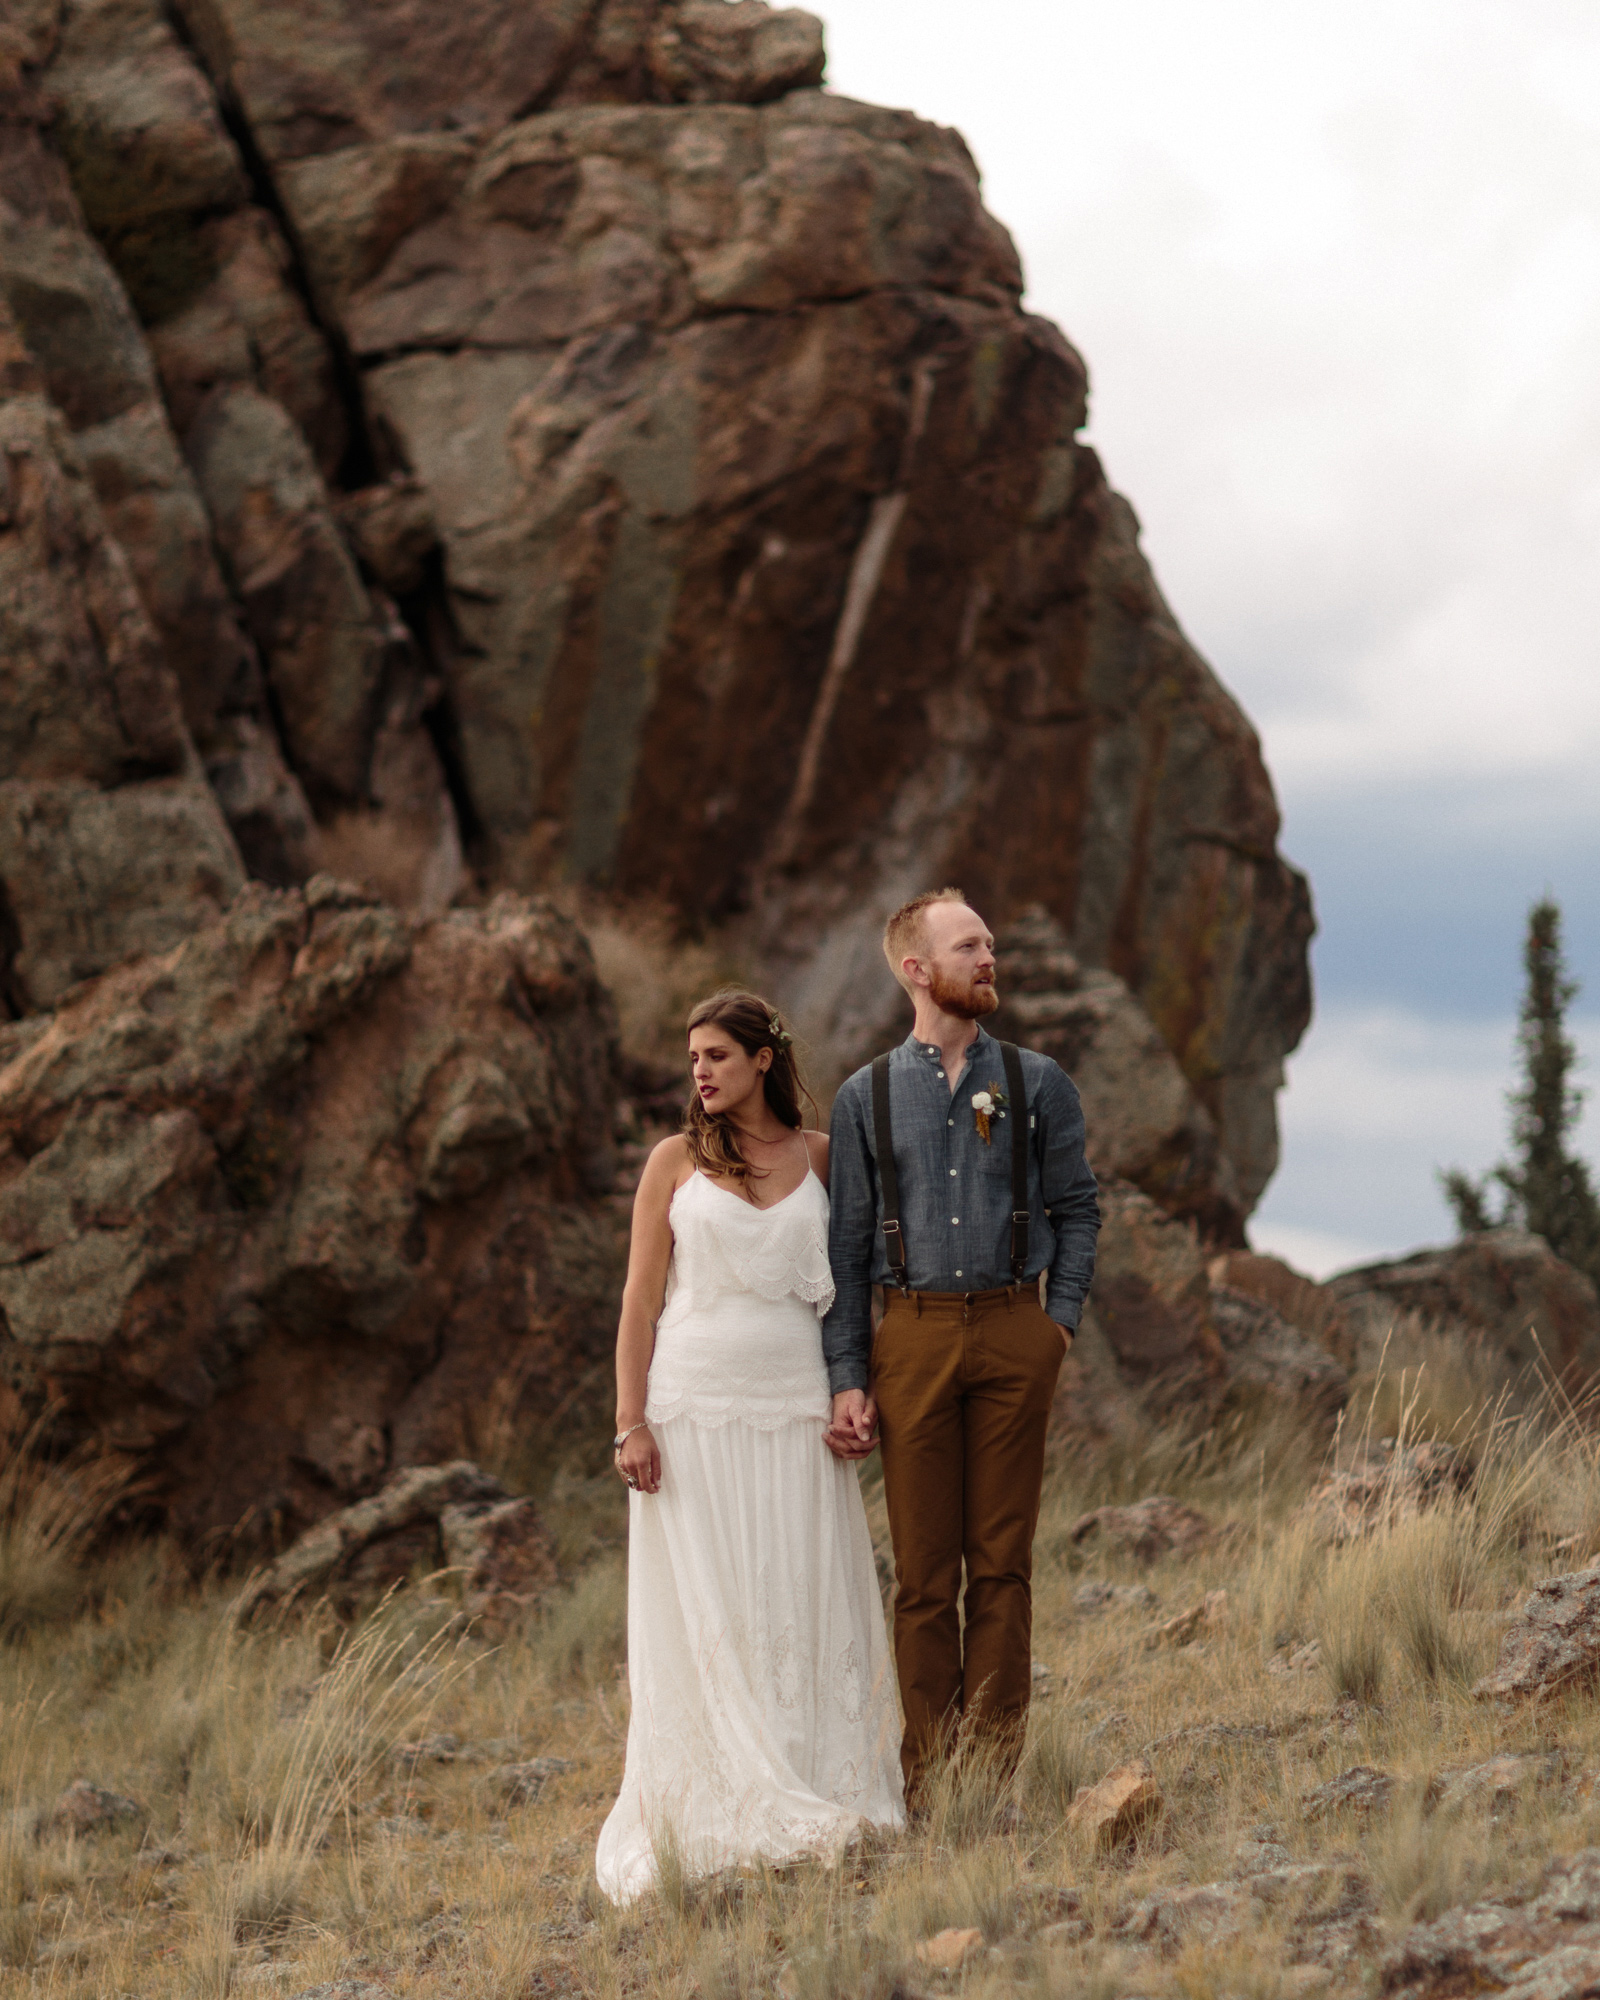 Jefferson-Colorado-Wedding-Photographer-Candice-and-TJ-81.jpg